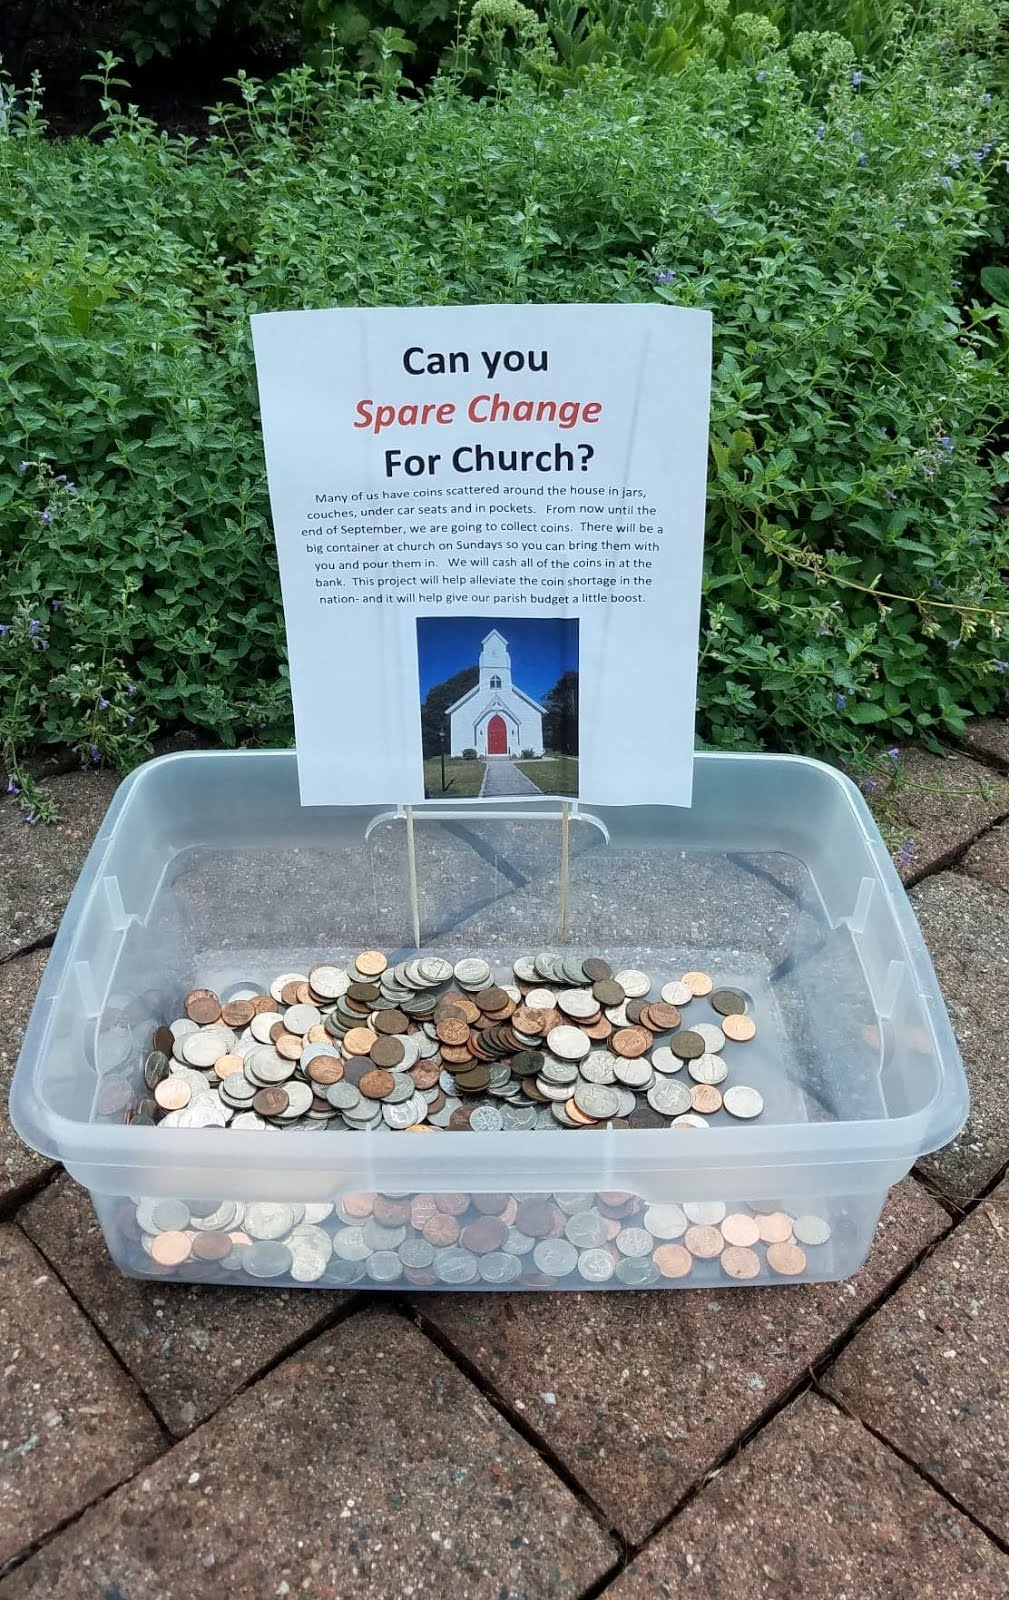 CAN YOU SPARE CHANGE FOR CHURCH?